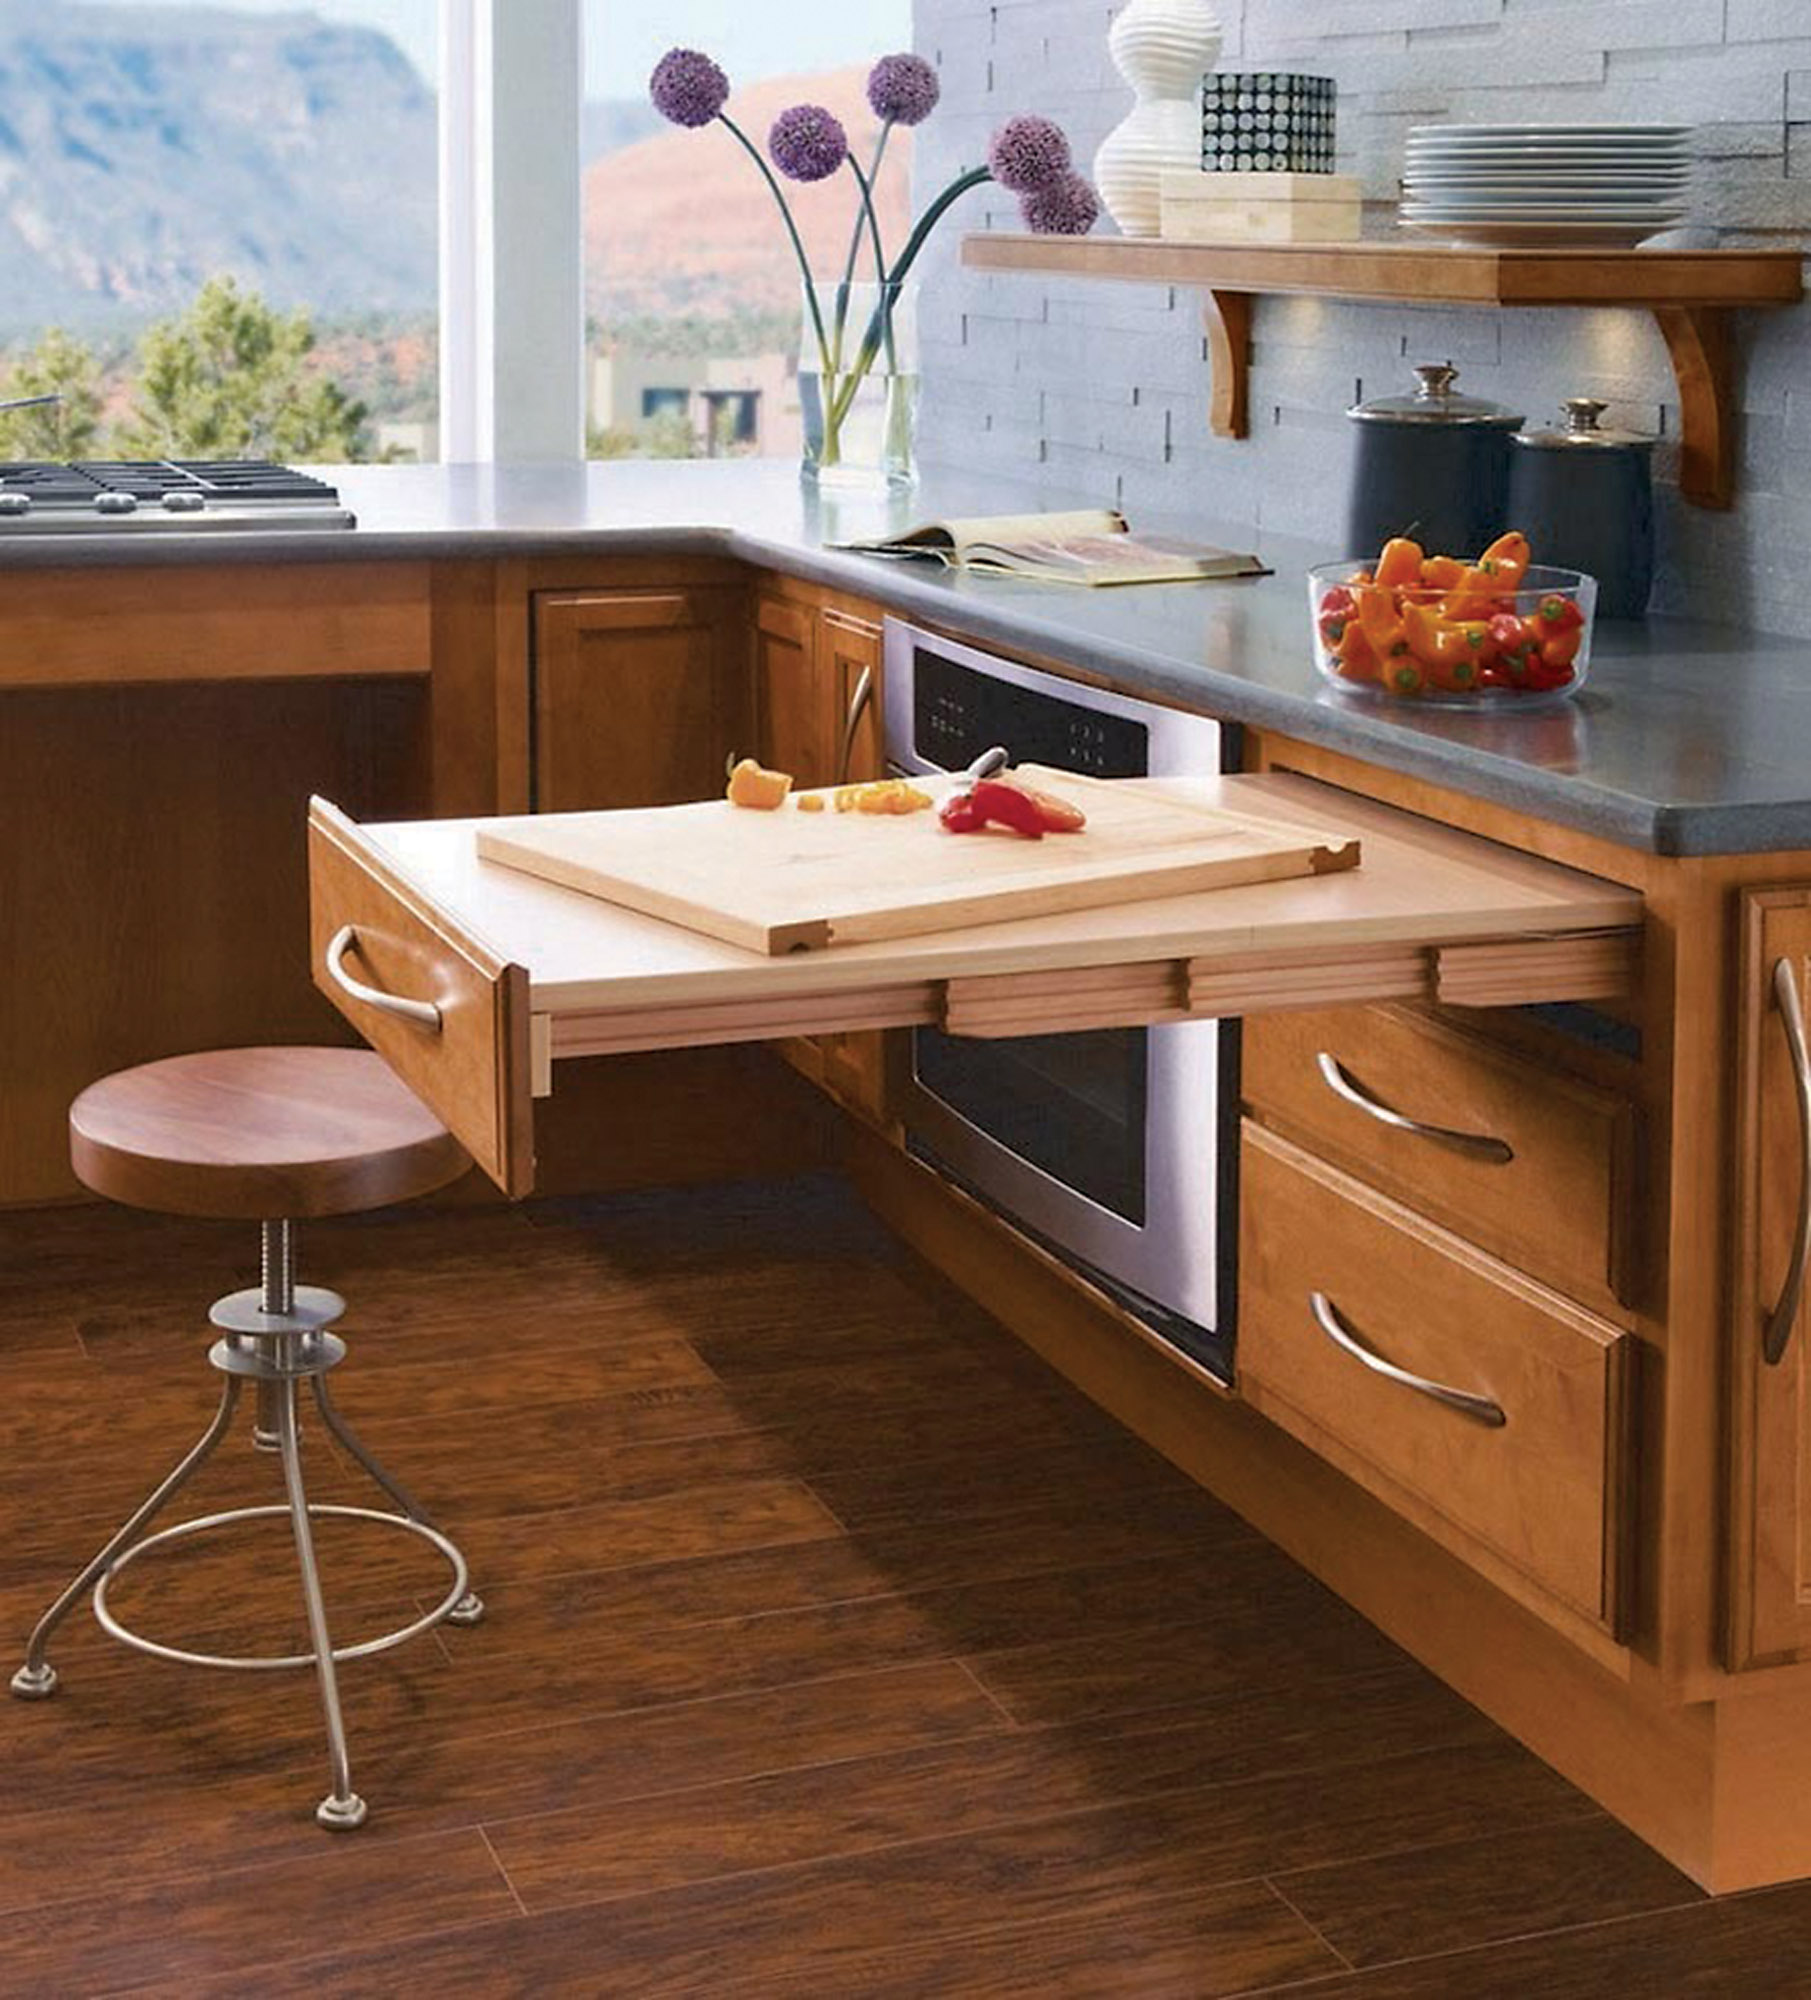 Passport Base pullout table extends at a good height; the company also offers pullout, base-cabinet pantries.